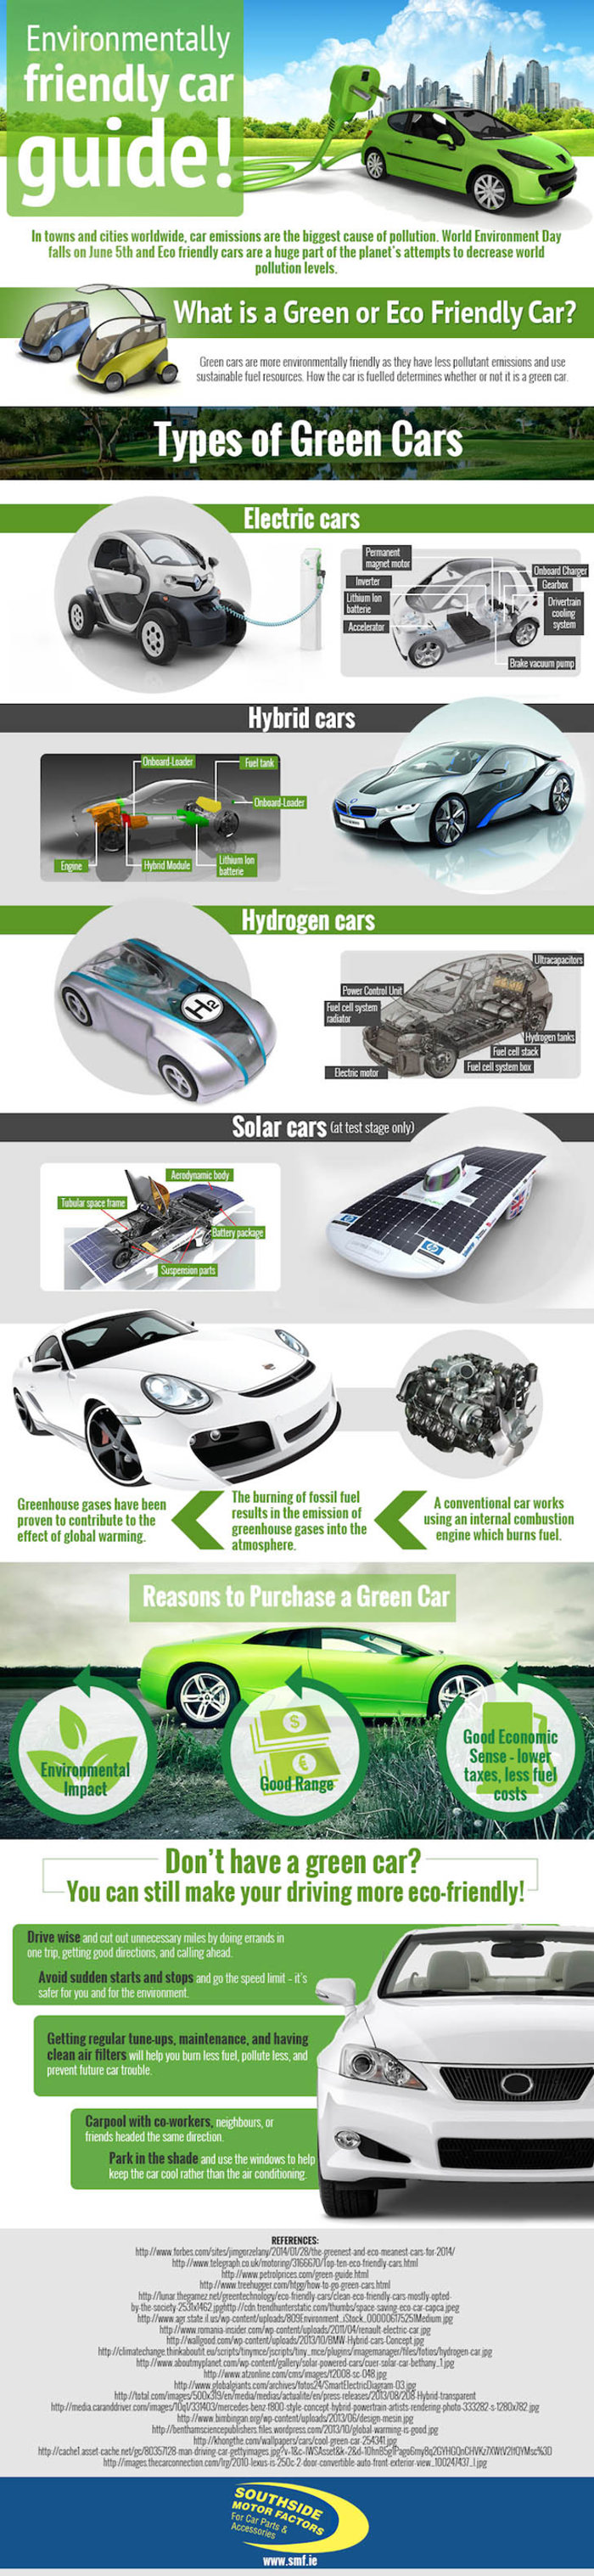 Most-Environmentally-Friendly-Cars-2